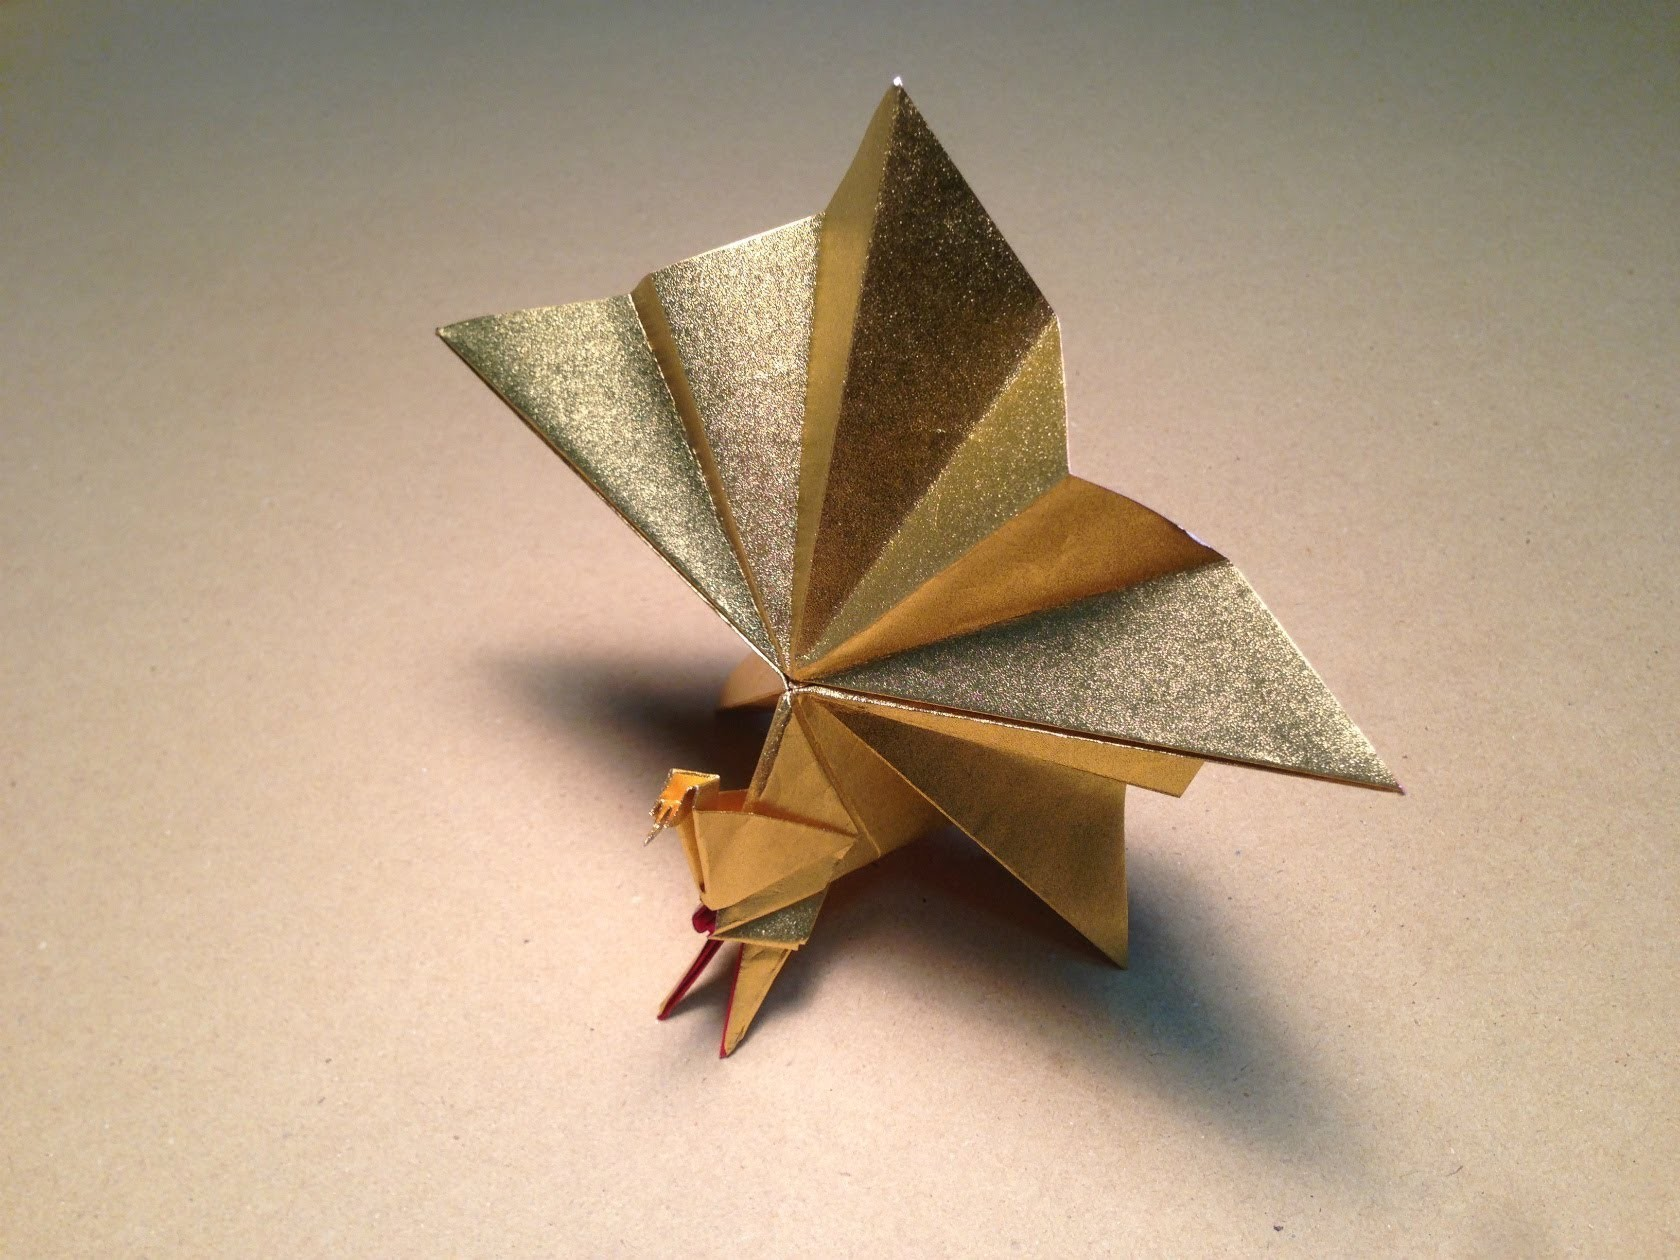 Folding Paper How to make - Origami Bird Instructions Peacock [Youtube]